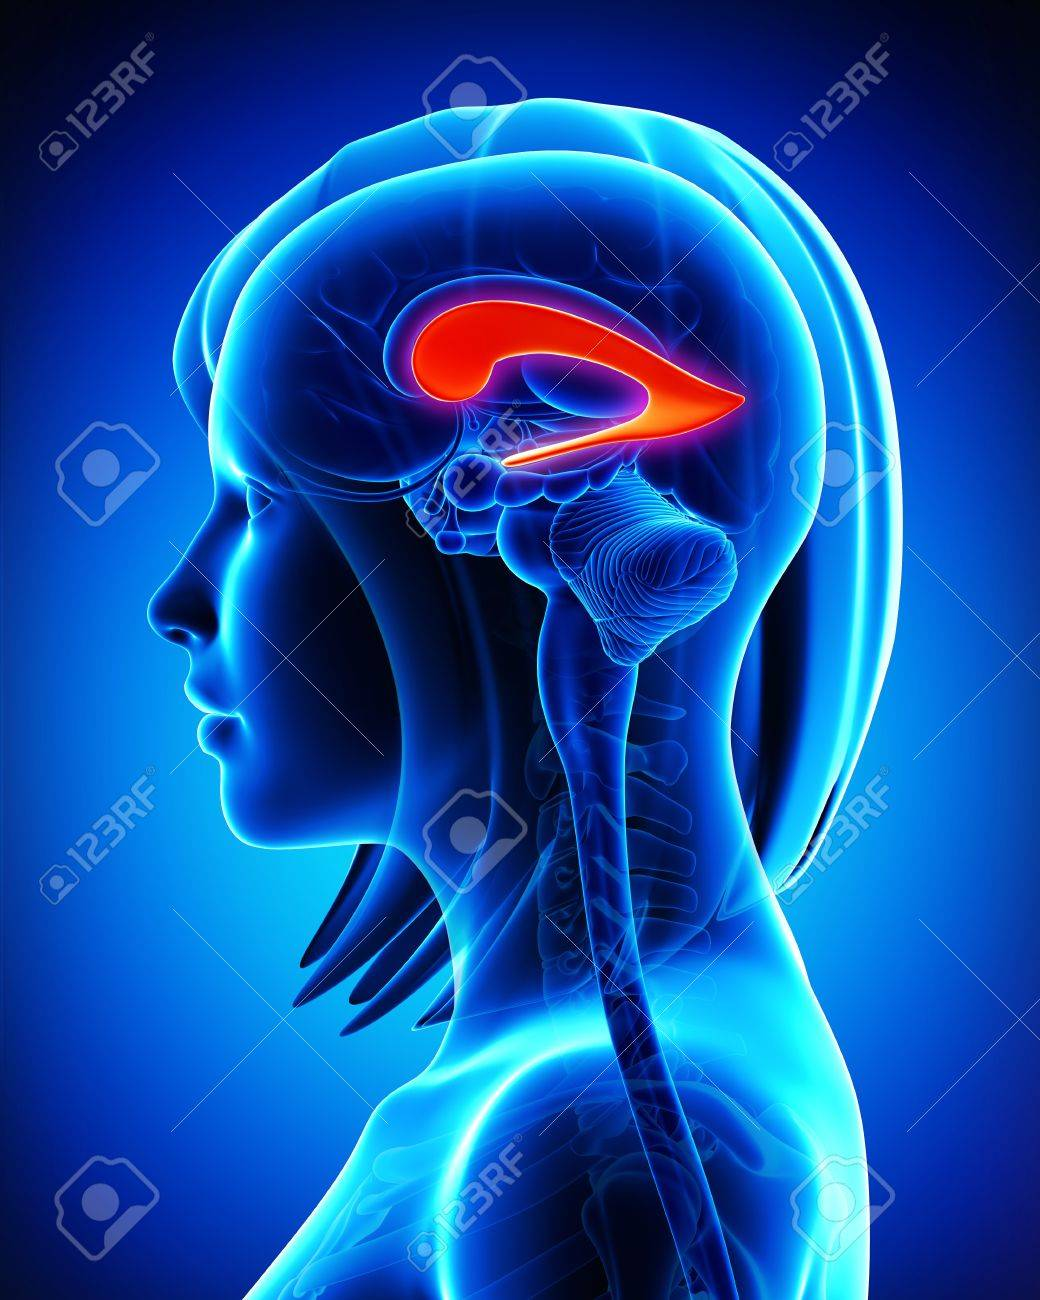 Anatomy Of Brain Of Lateral Ventricle Stock Photo, Picture And ...